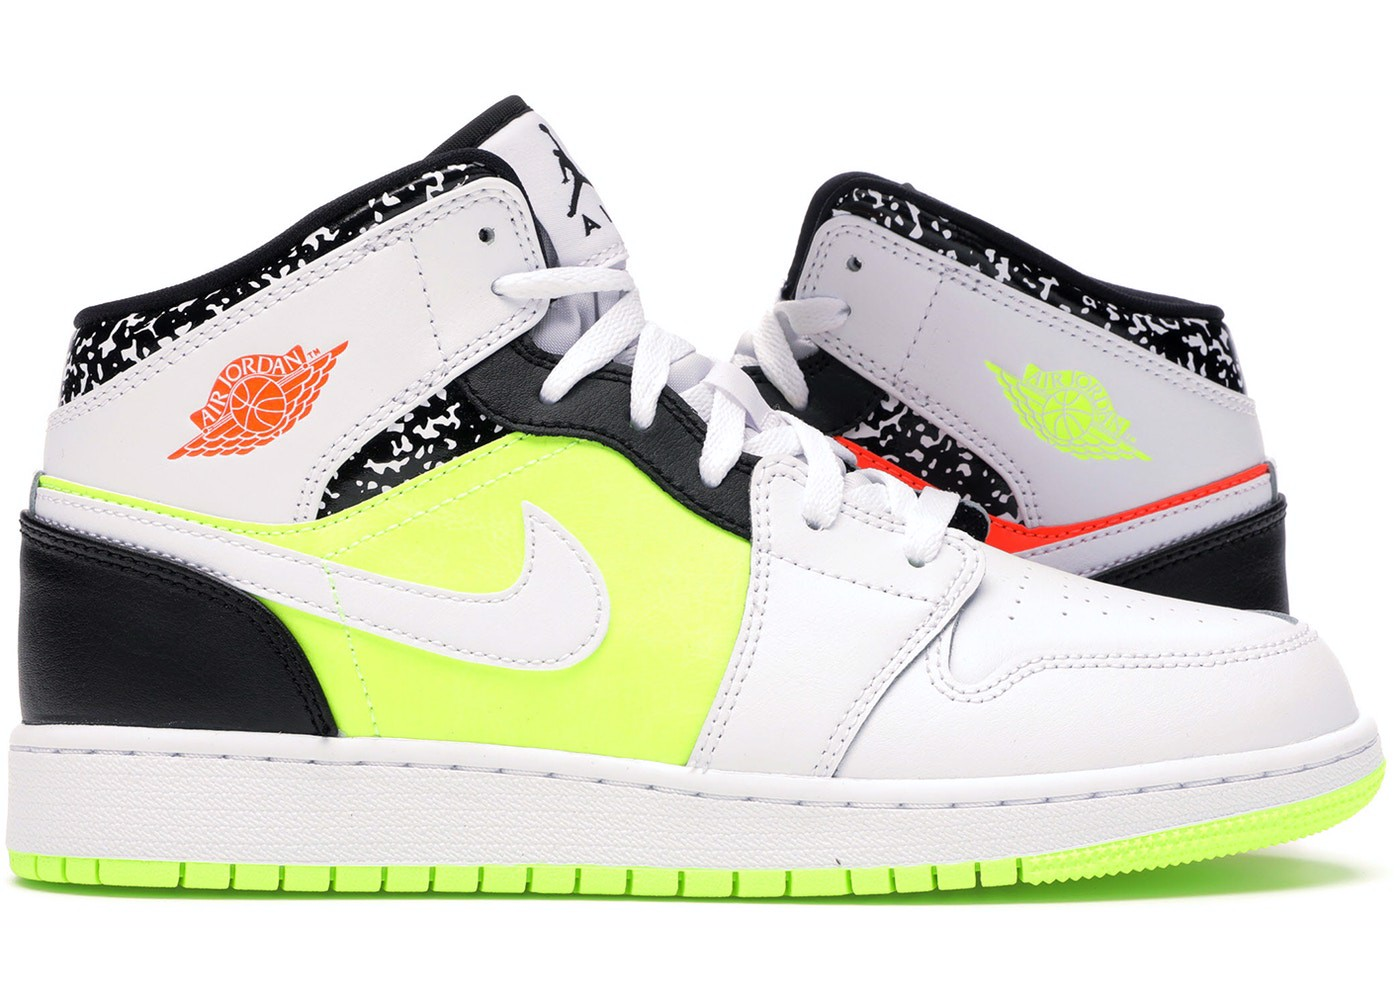 Nike Air Jordan 1 Mid Composition Notebook 554725-870